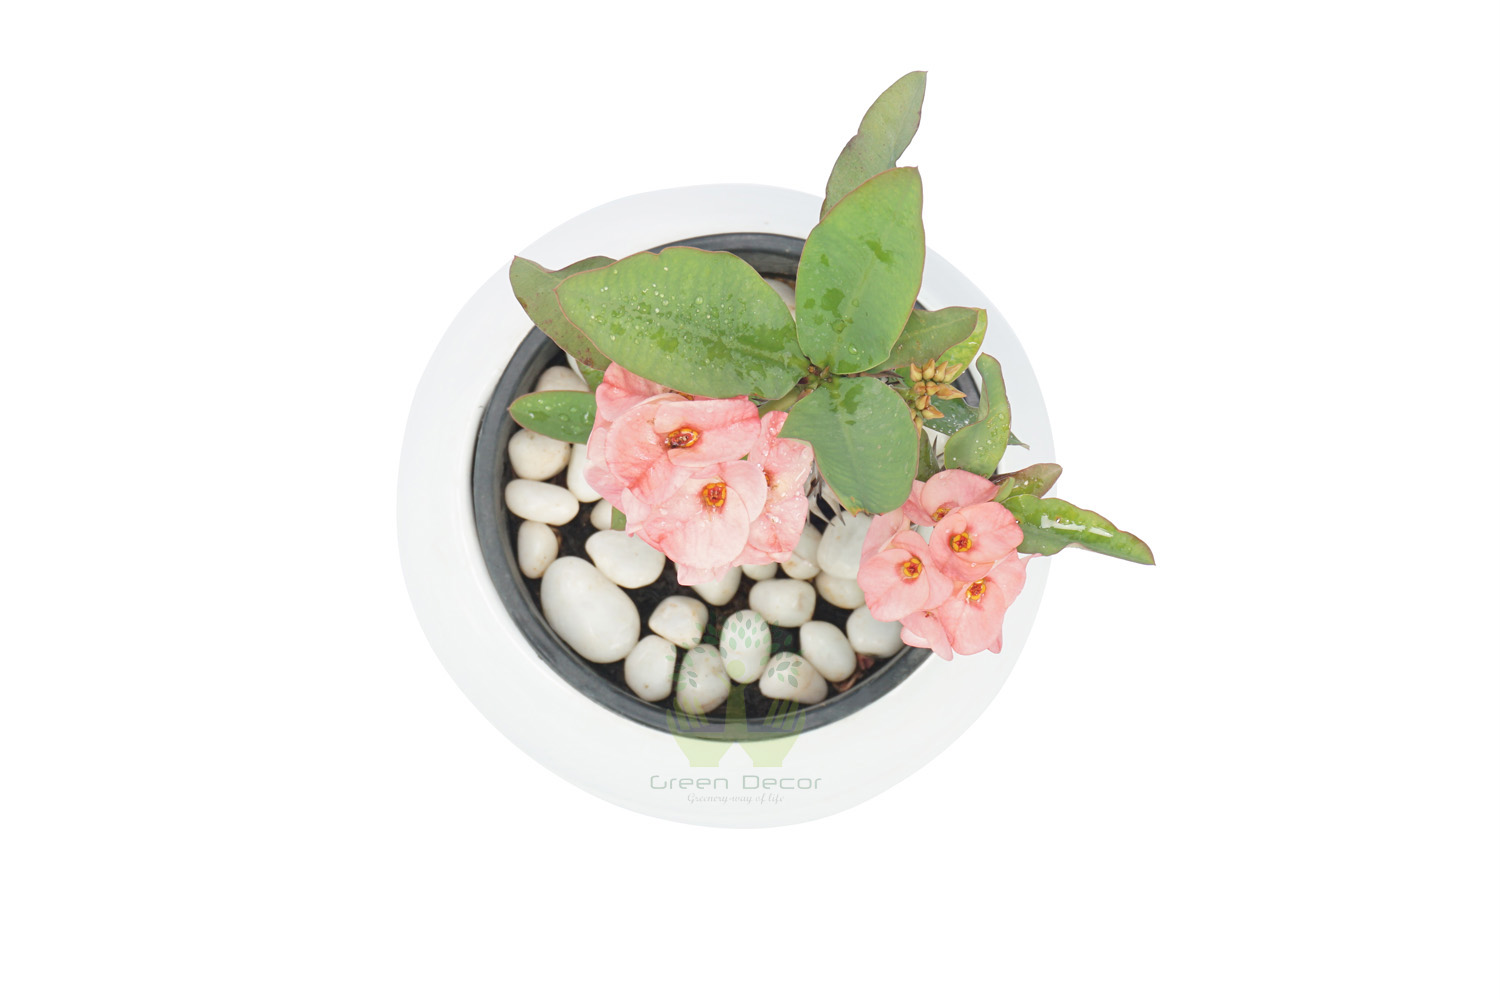 Buy Euphorbia Milli-Pink Plants , White Pots and seeds in Delhi NCR by the best online nursery shop Greendecor.